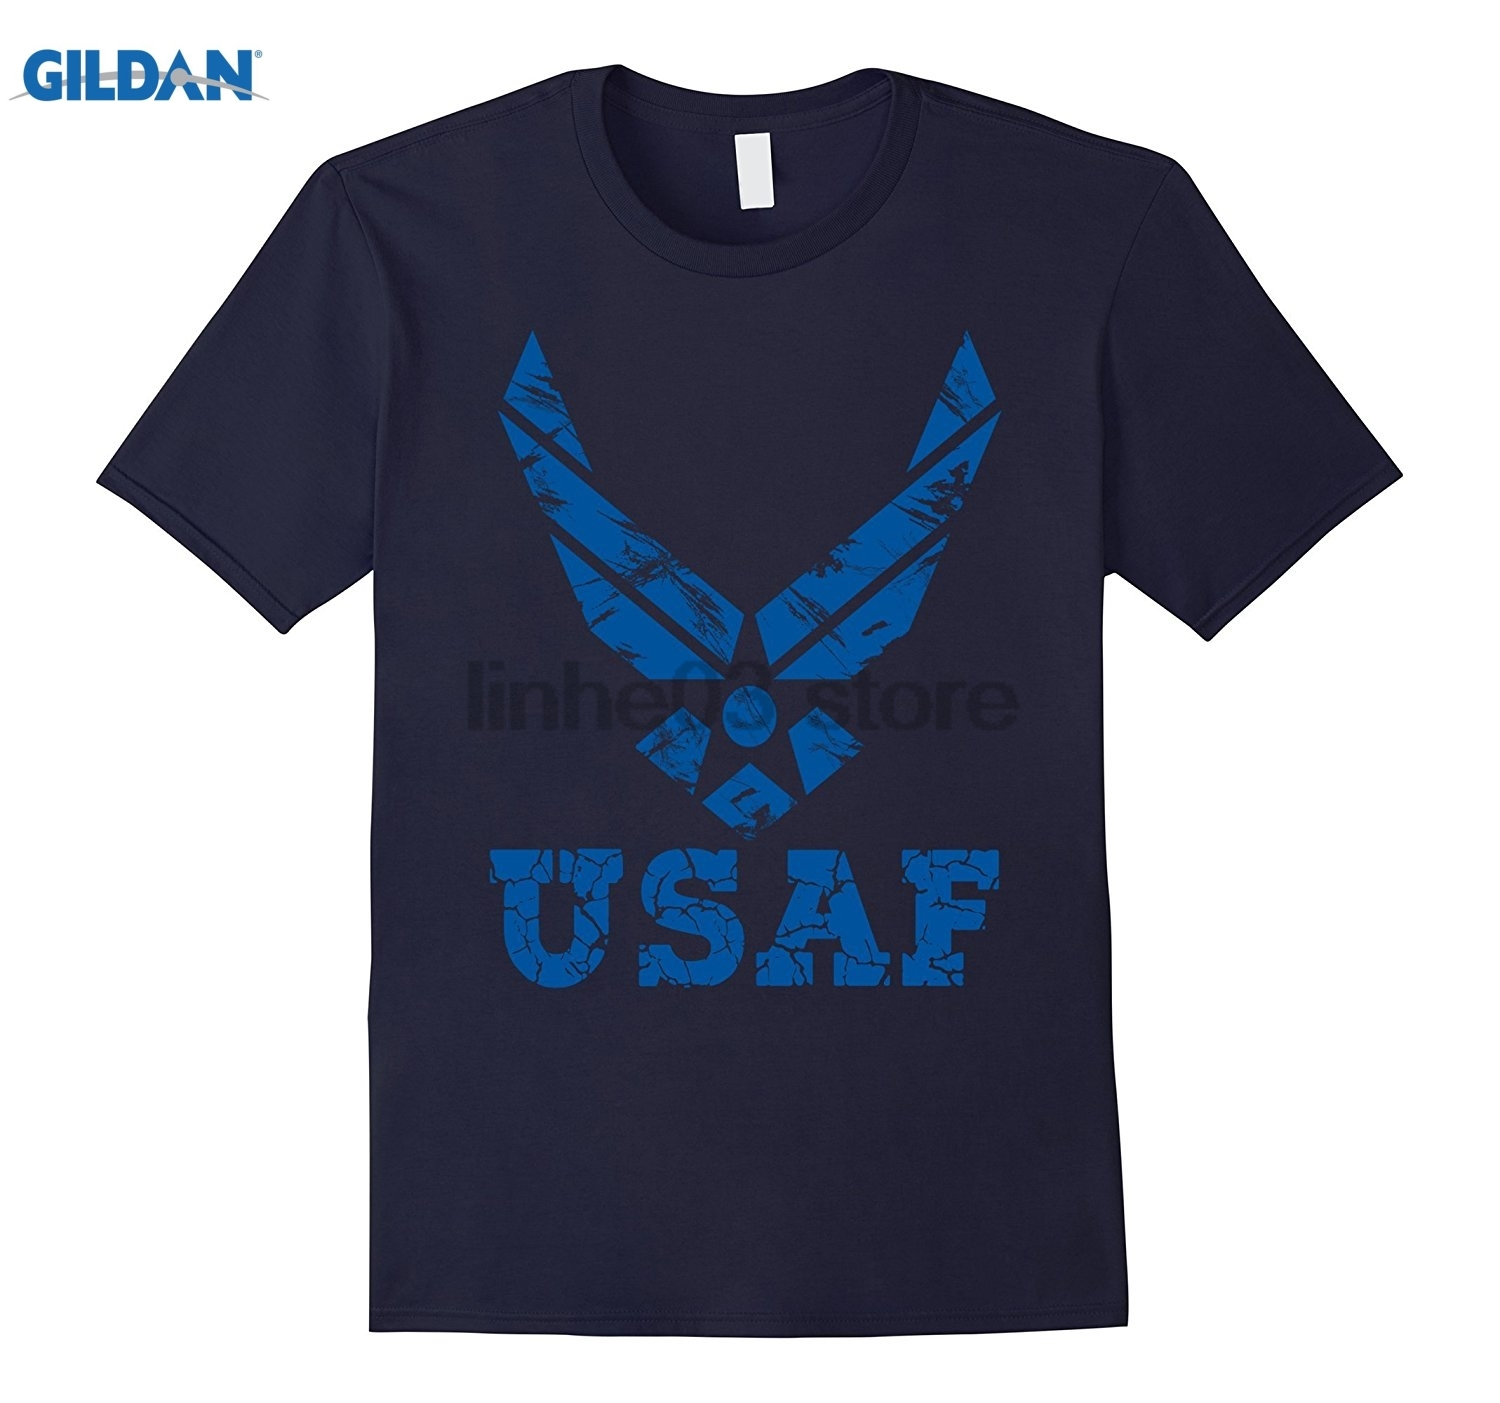 GILDAN U.S. AIR FORCE ORIGINAL USAF LOGO T-SHIRT Dress female T-shirt Mothers Day Ms. T-shirt